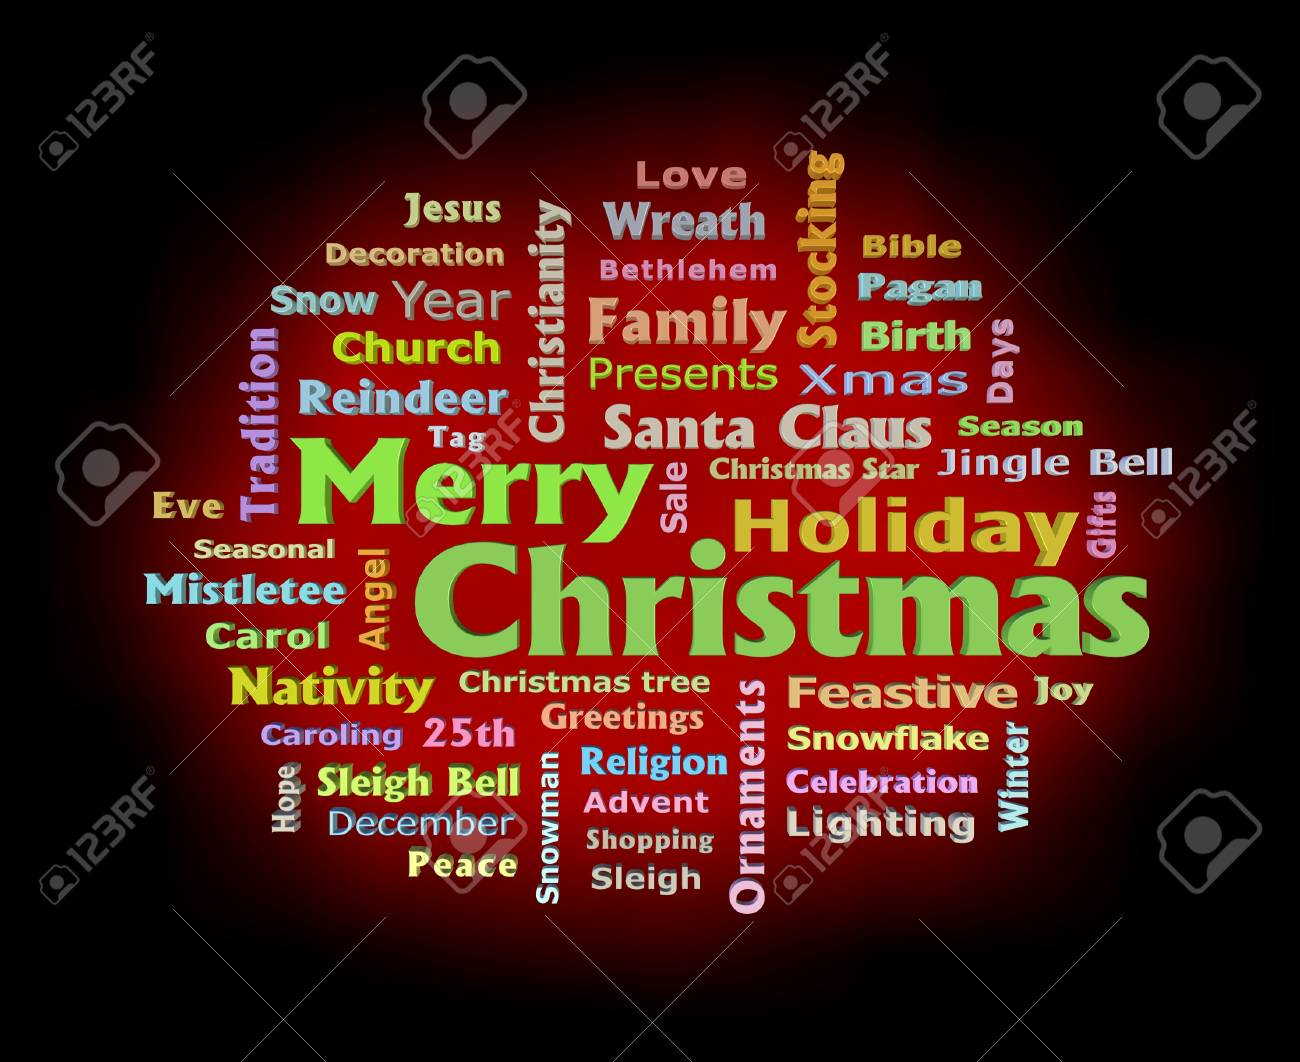 Merry Christmas Red Color Glow 3d Texts Greetings Word Cloud Stock